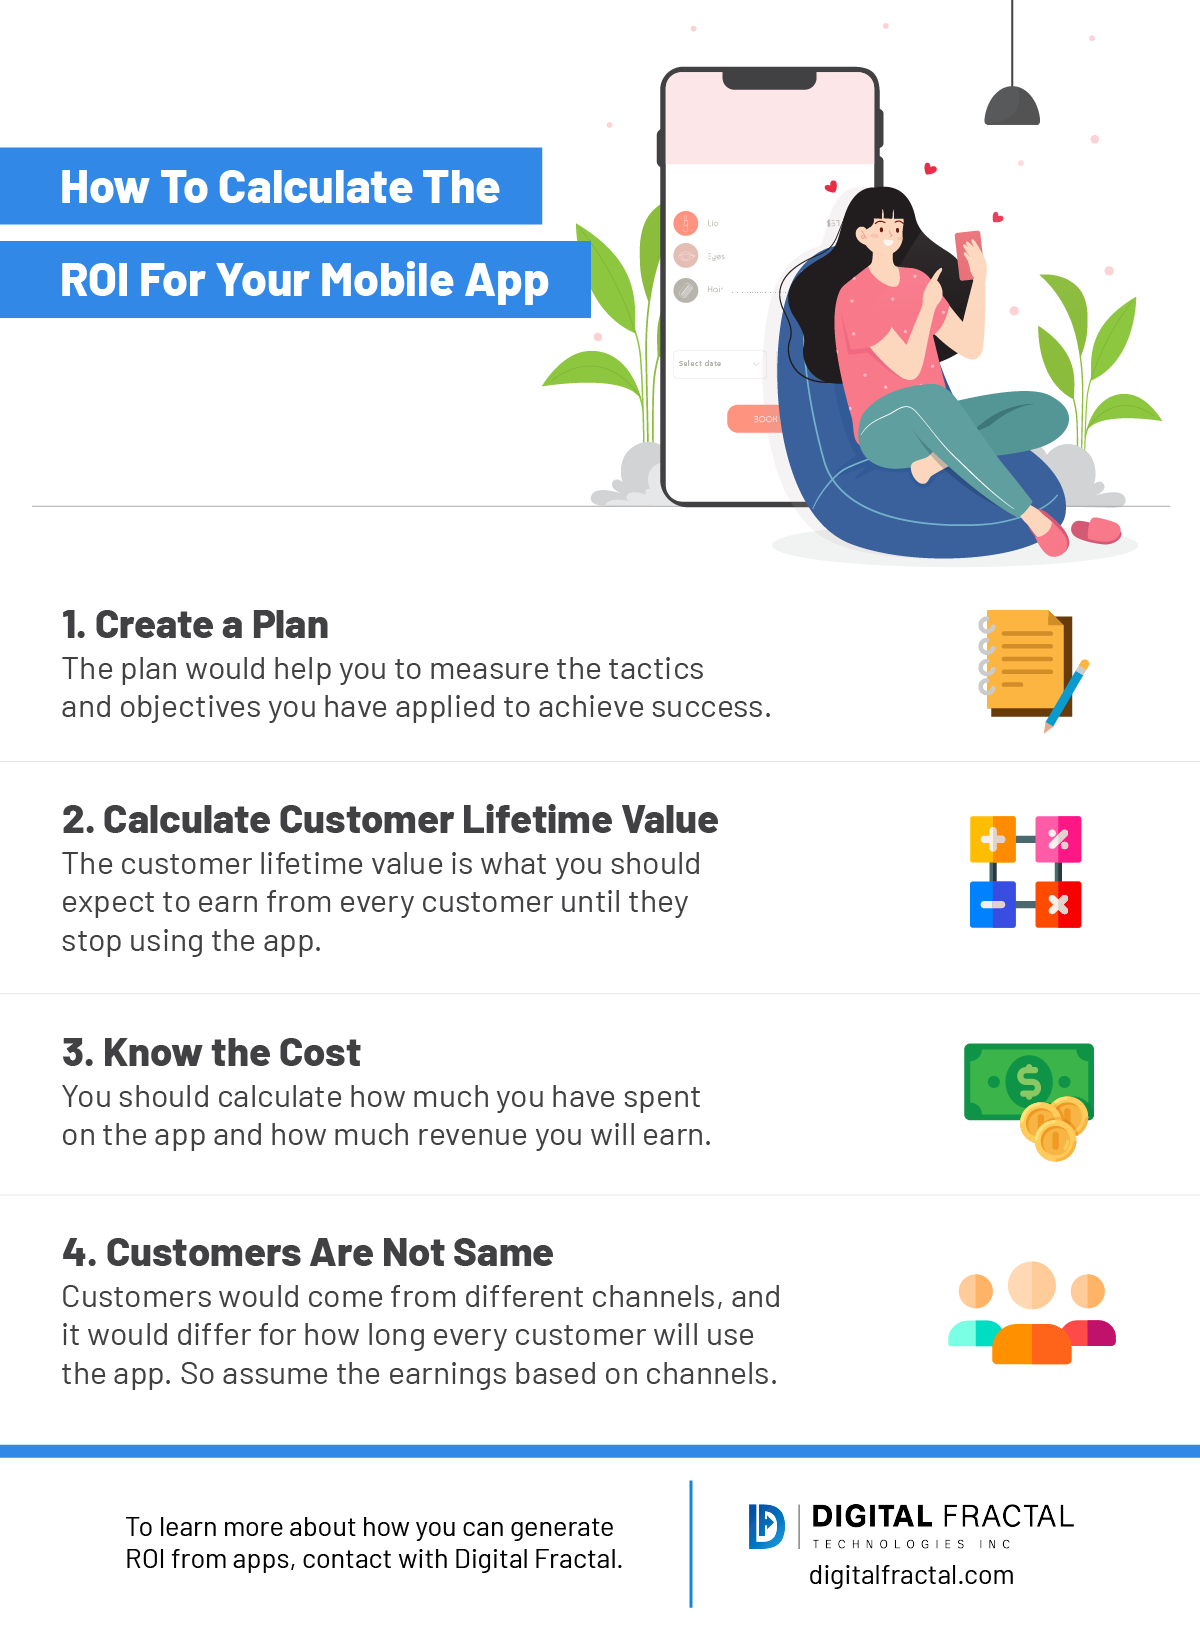 Calculate The ROI for Your Mobile App